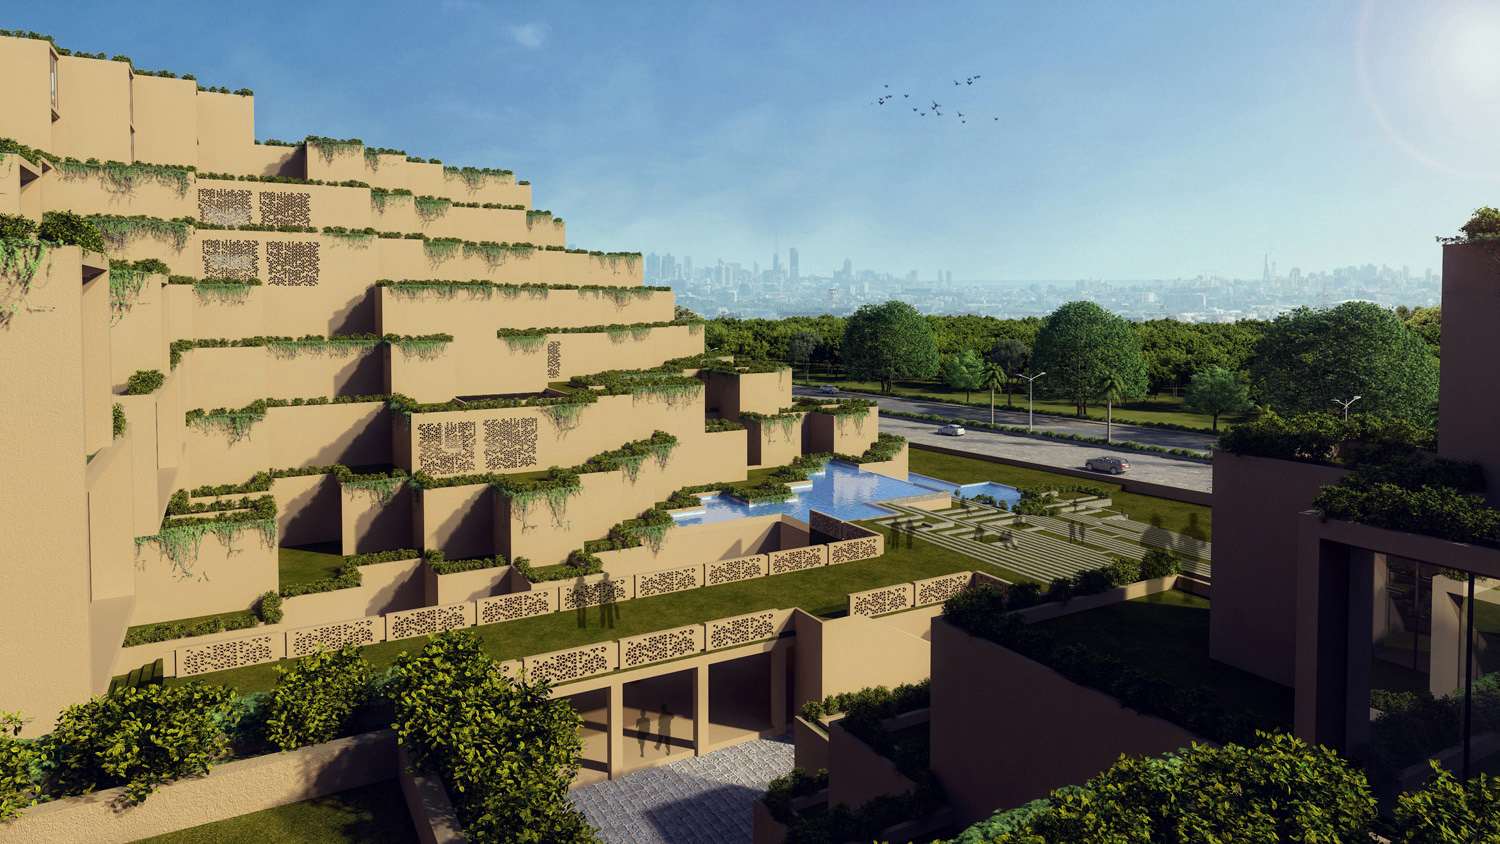 VIEW OVERLOOKING THE TERRACES ON THE NORTH SIDE  SANJAY PURI ARCHITECTS